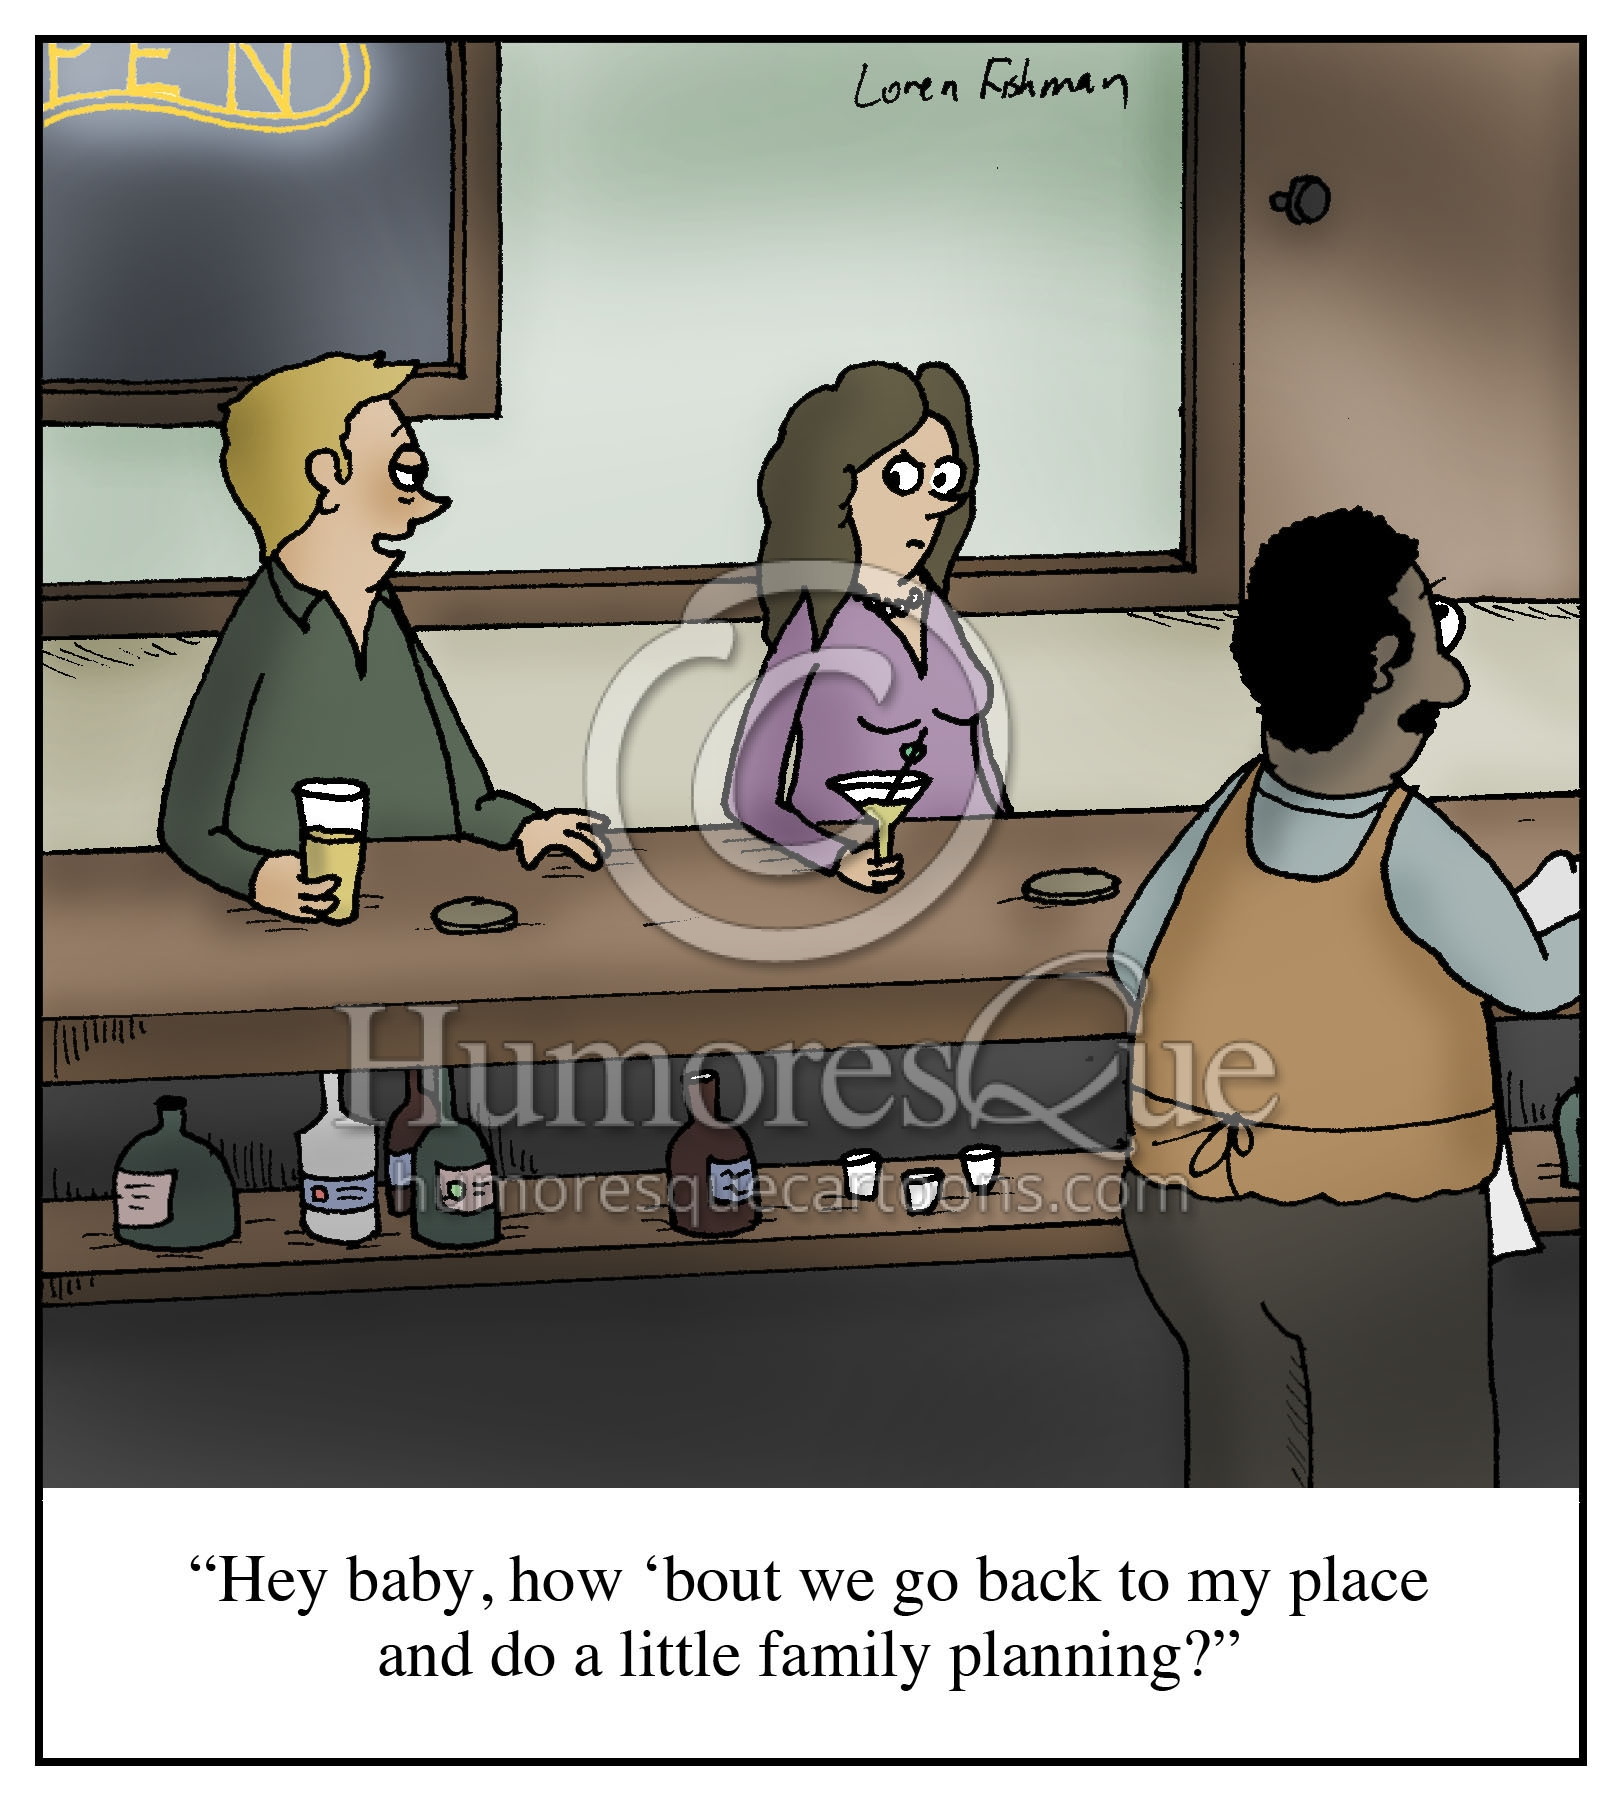 family planning euphemism dating cartoon